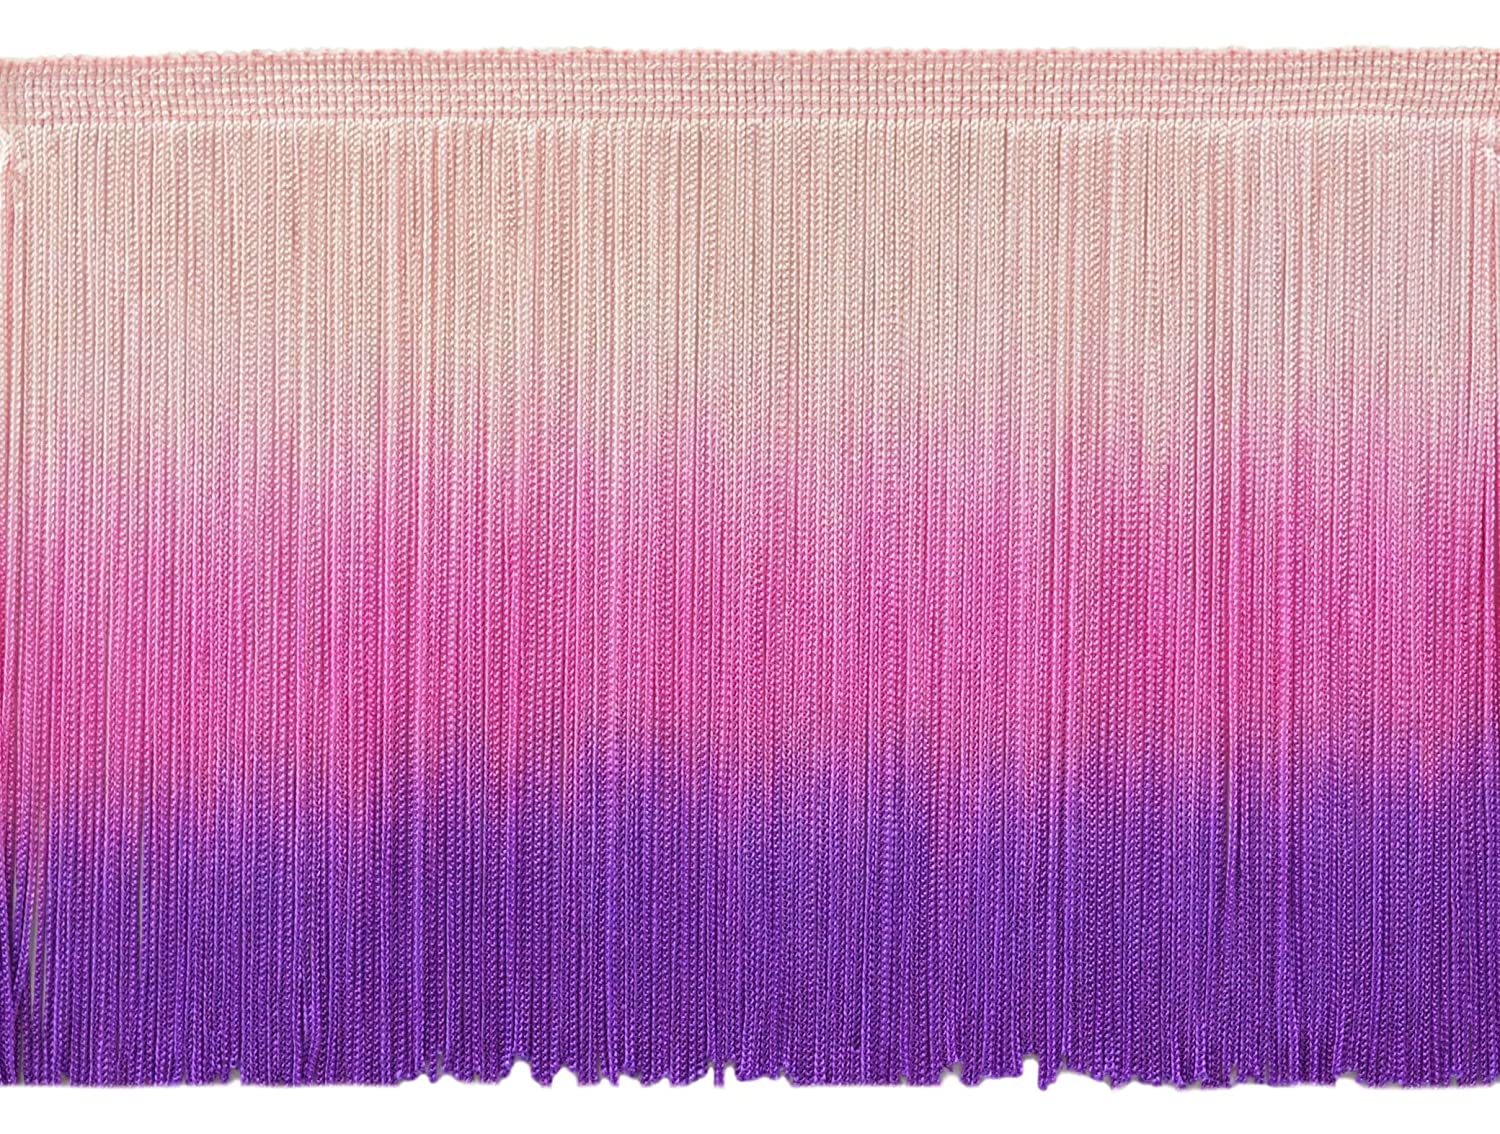 DecoPro 6 Inch Chainette Fringe Trim, Style# CF06 Color: Tie Dye Pink - TDP, Sold by The Yard